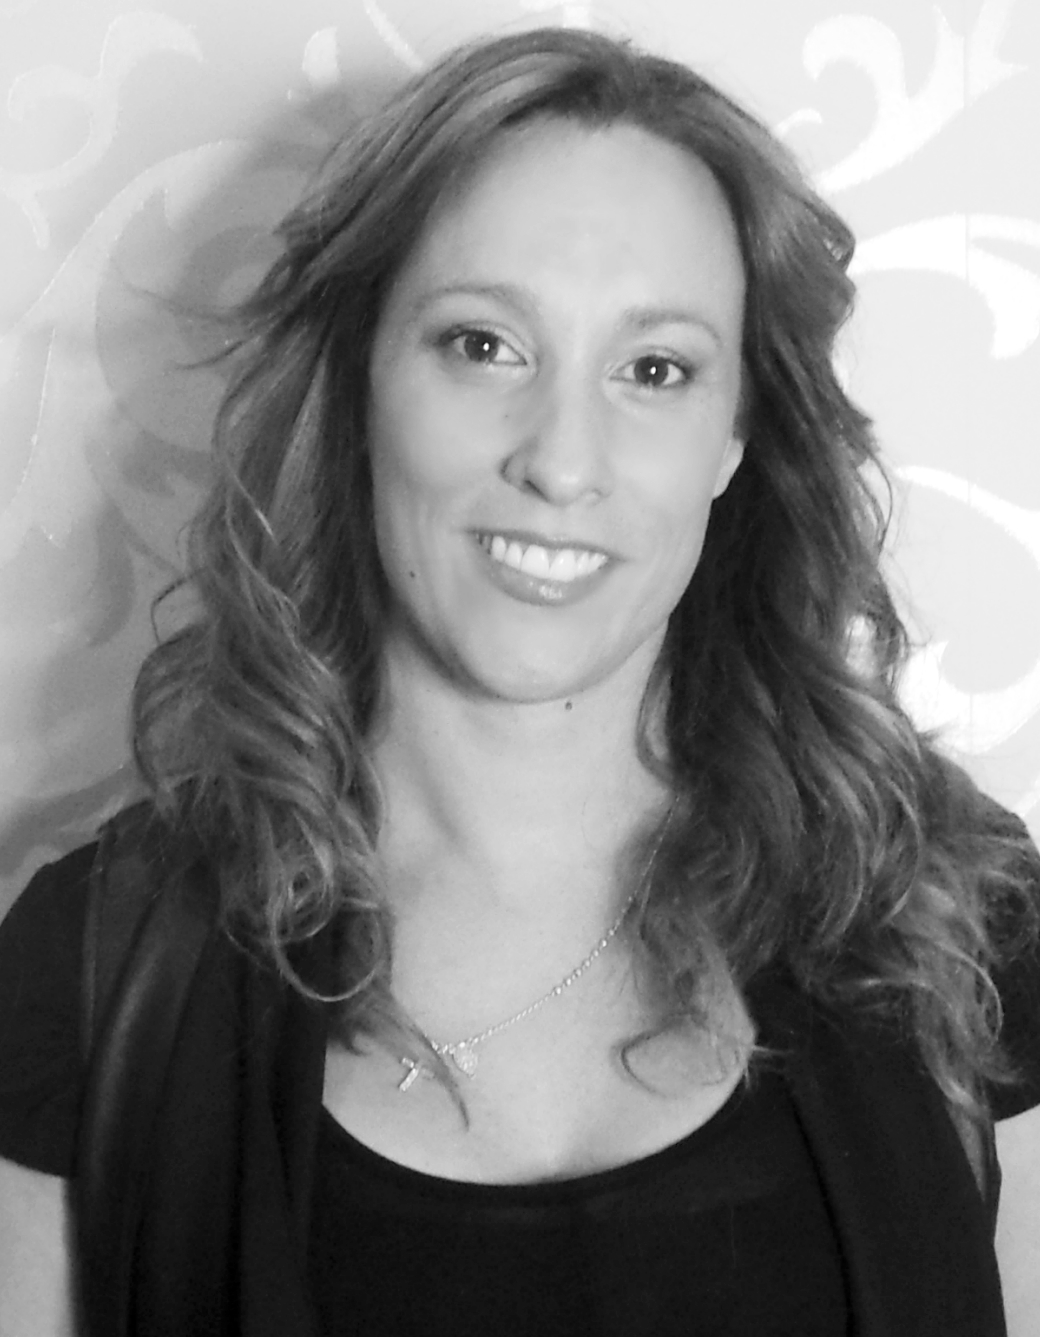 APRIL (Hair Stylist)  April is a experienced Stylist with over 15 years of experience. She can create any style - updos to sleek and straight.